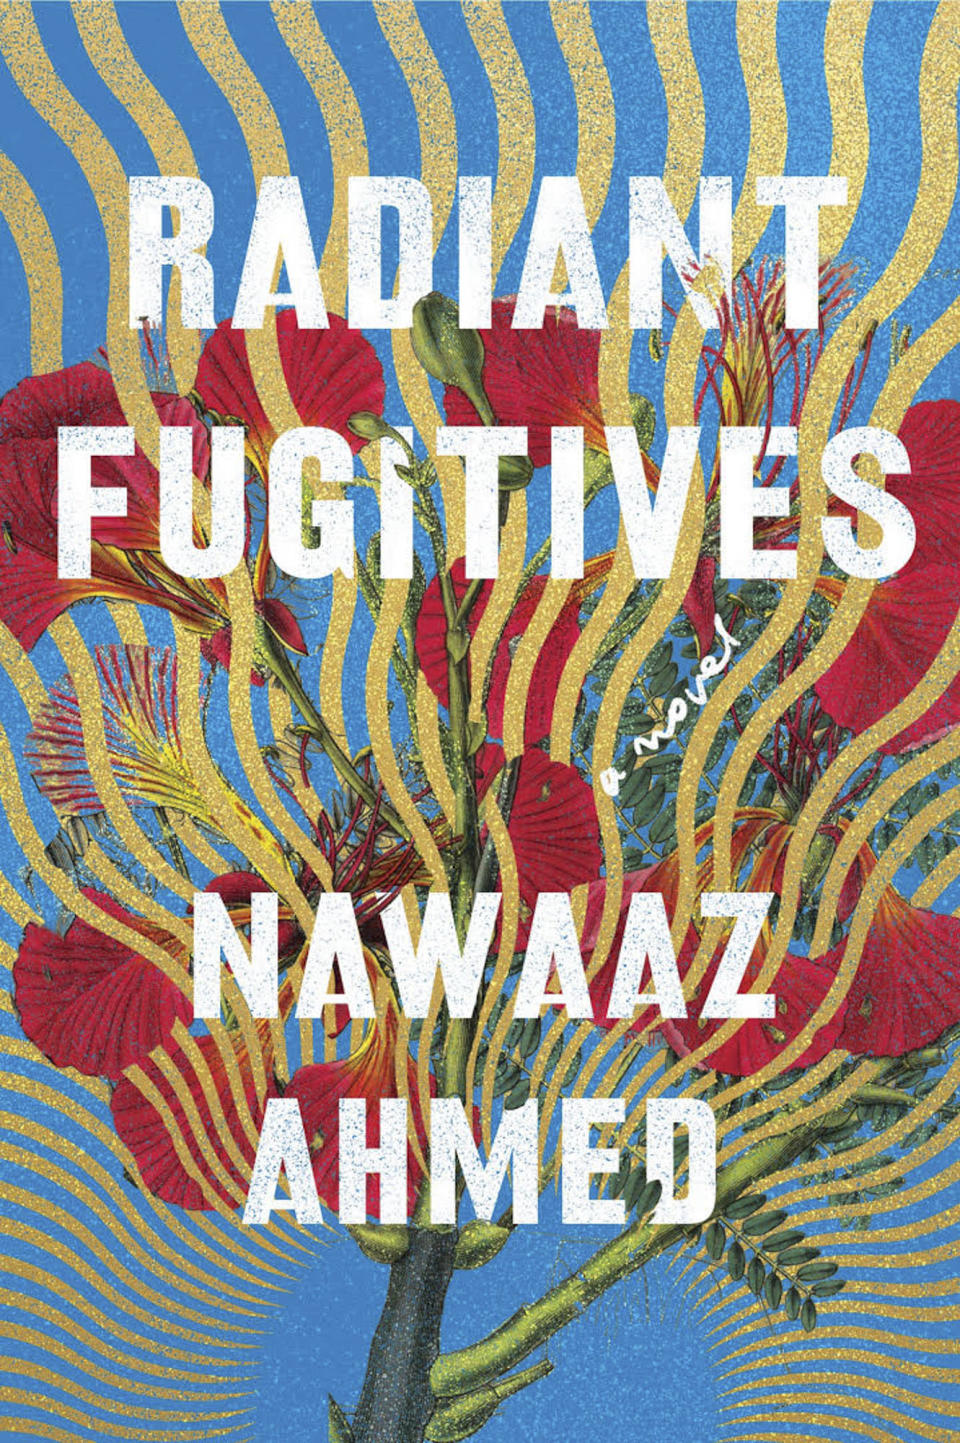 <p>The story of a fractured family — Seema lives in San Francisco working on Kamala Harris' attorney general campaign, estranged from her parents in Chennai after coming out as a lesbian — is told by the unborn baby of the book's protagonist. Ahmed pulls off the unconventional framing, and the result is irrefutably poignant. (Aug. 3)</p>